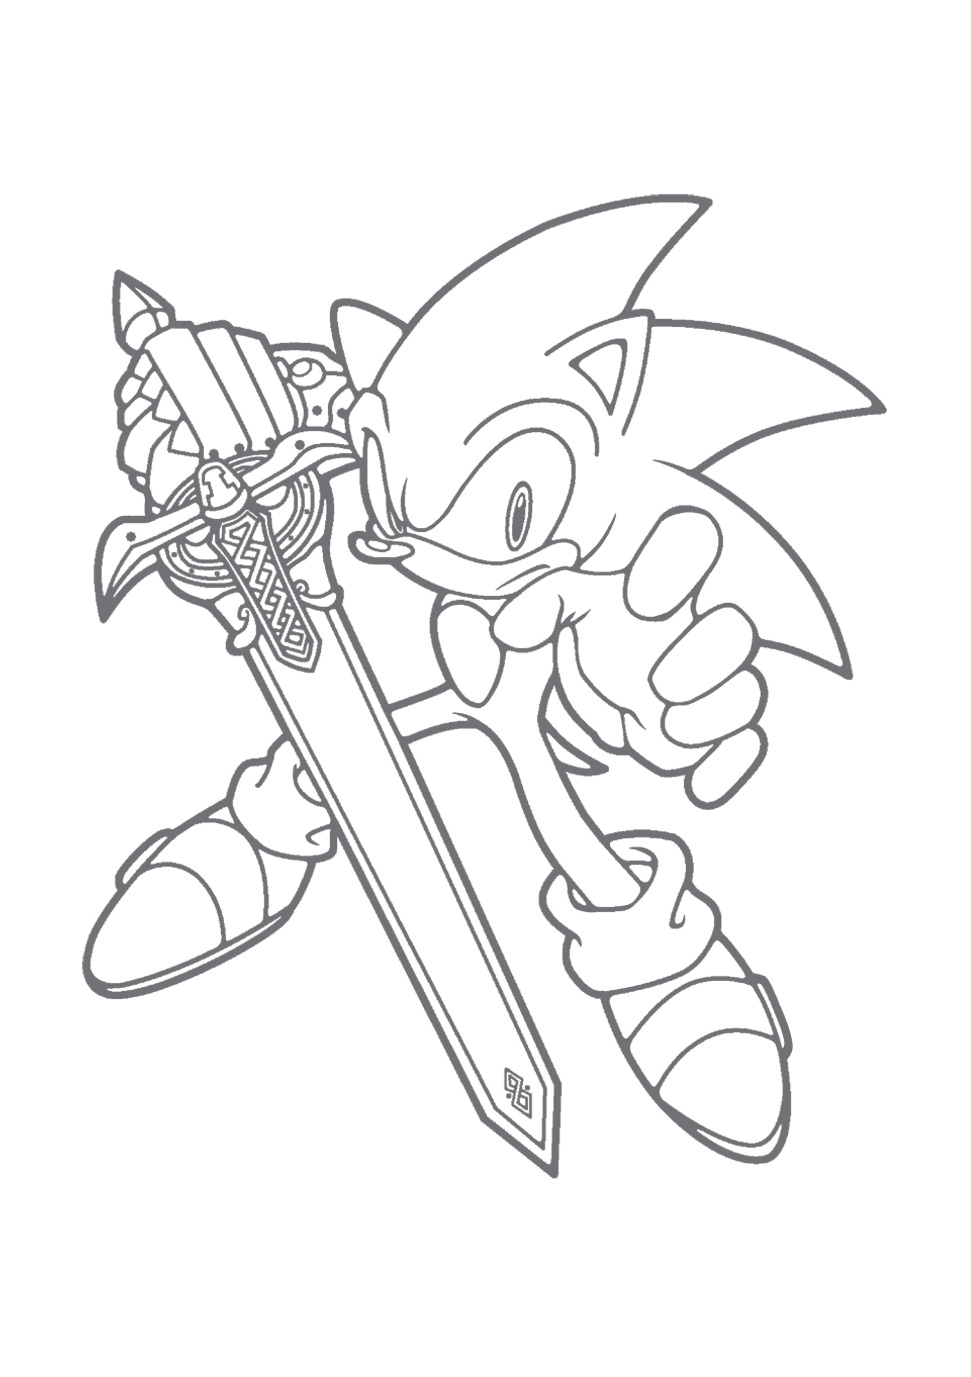 coloring pages sonic the hedgehog - photo#16